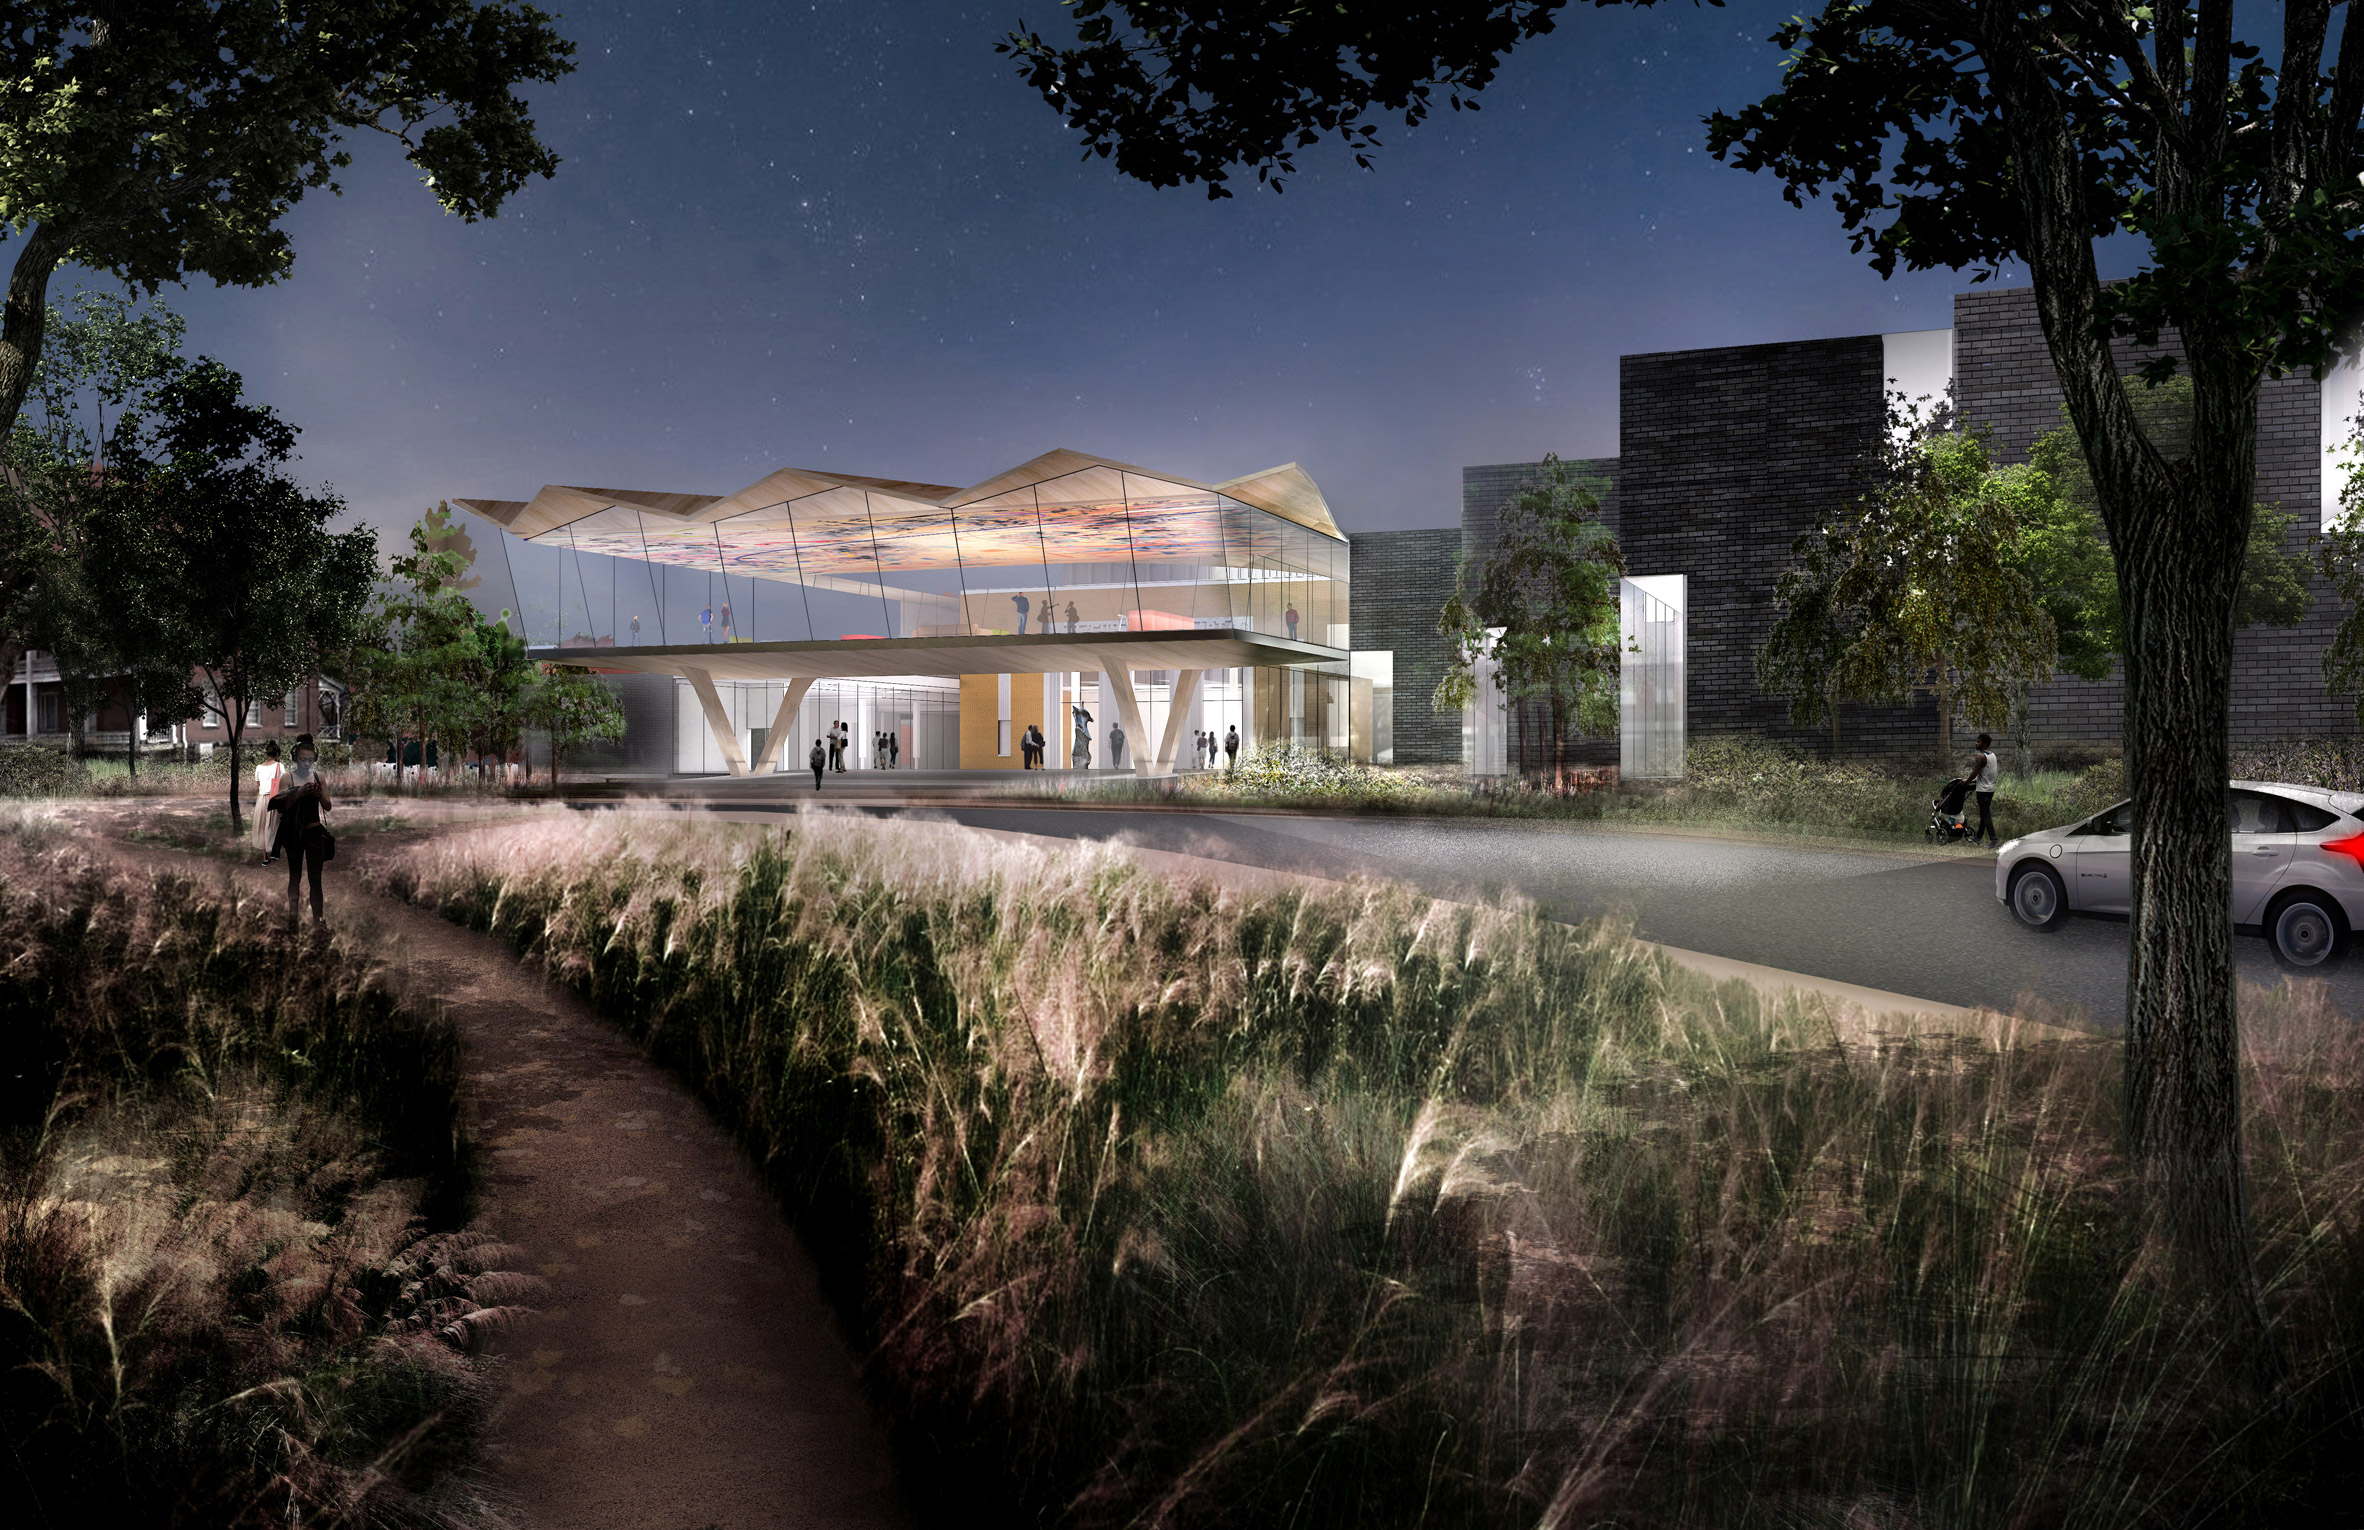 Studio Gang unveils plans for Arkansas Art Center overhaul